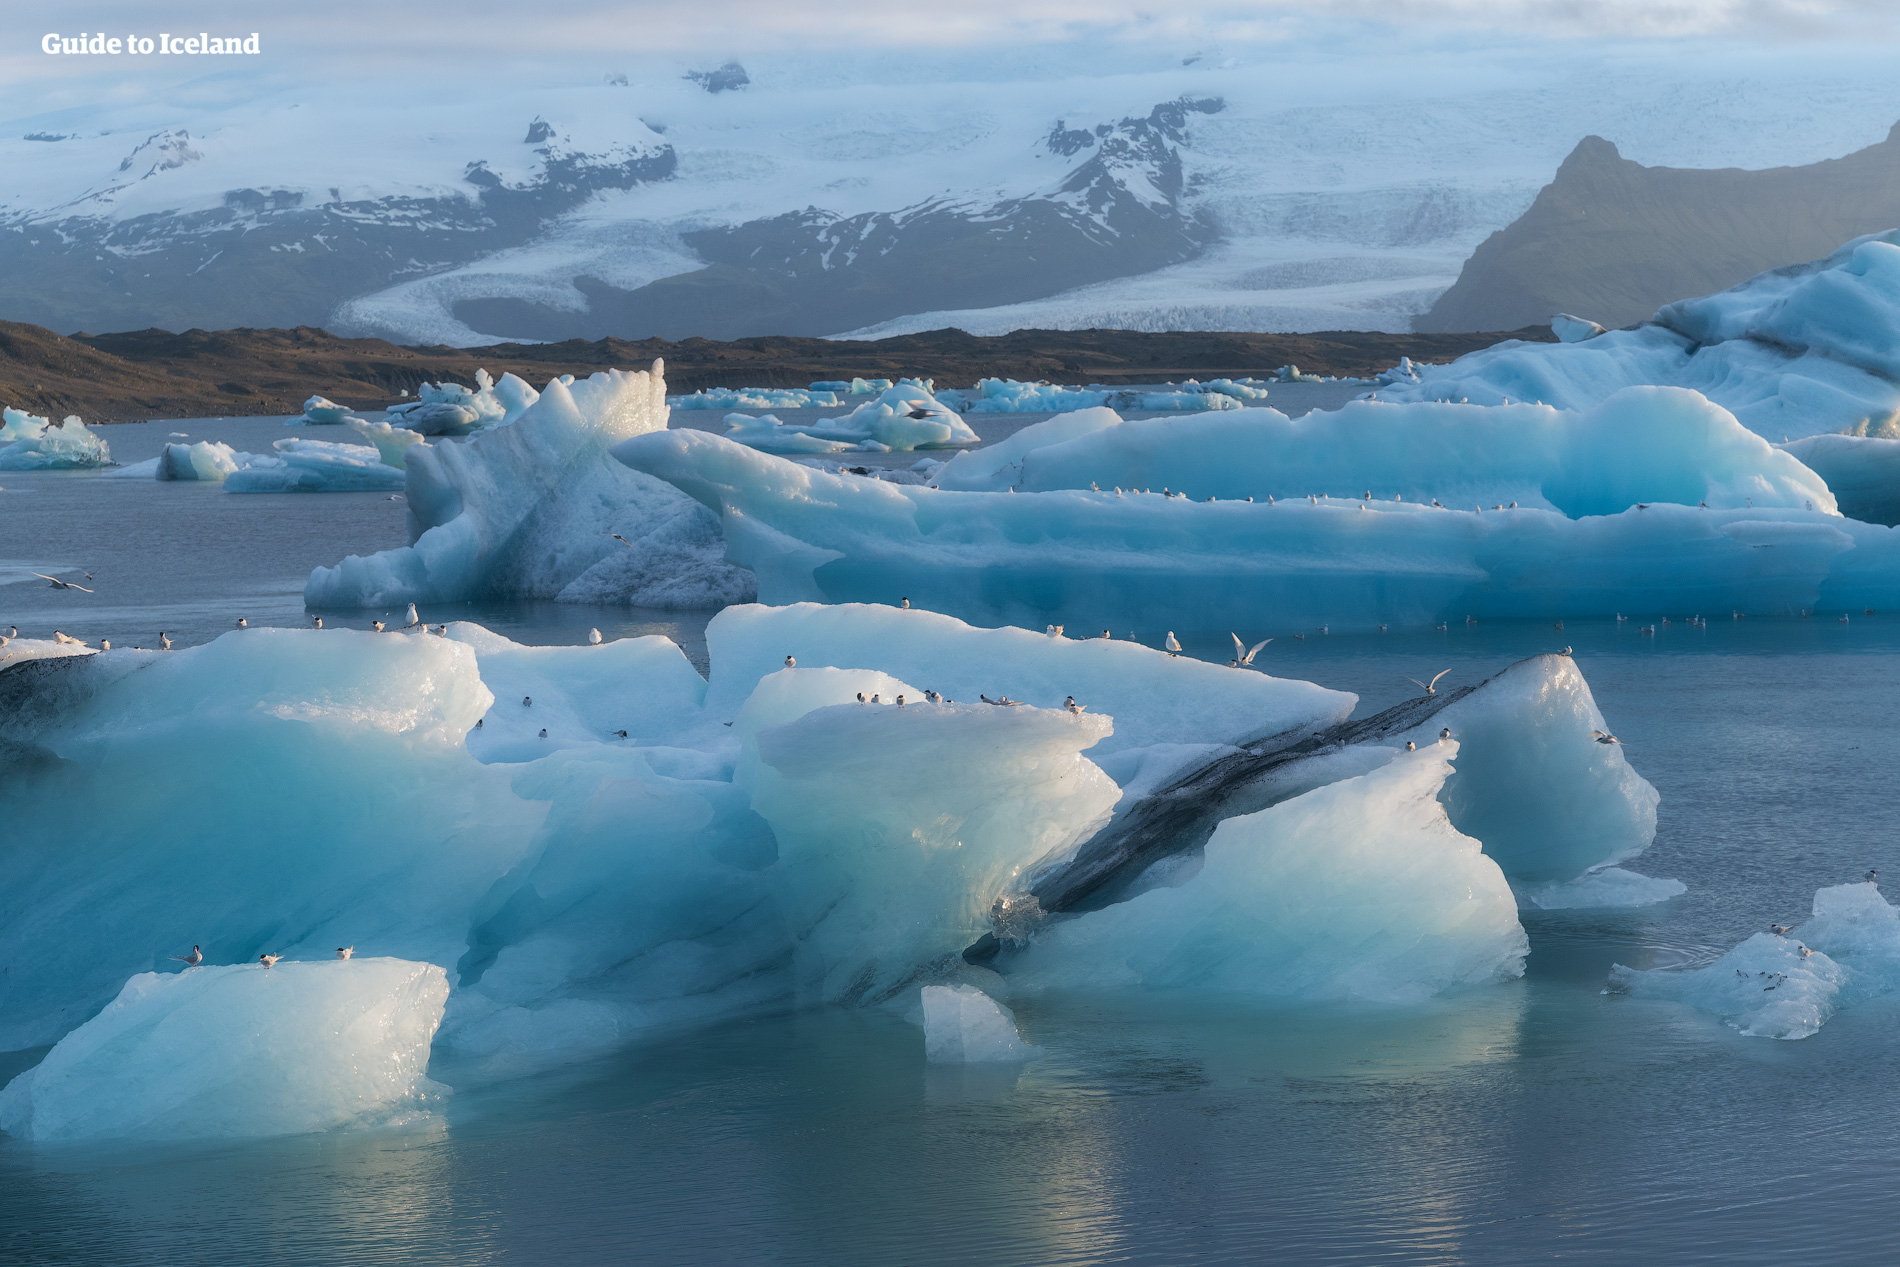 Icebergs floating in the Jökulsárlón Glacier Lagoon in the Southeast of Iceland.